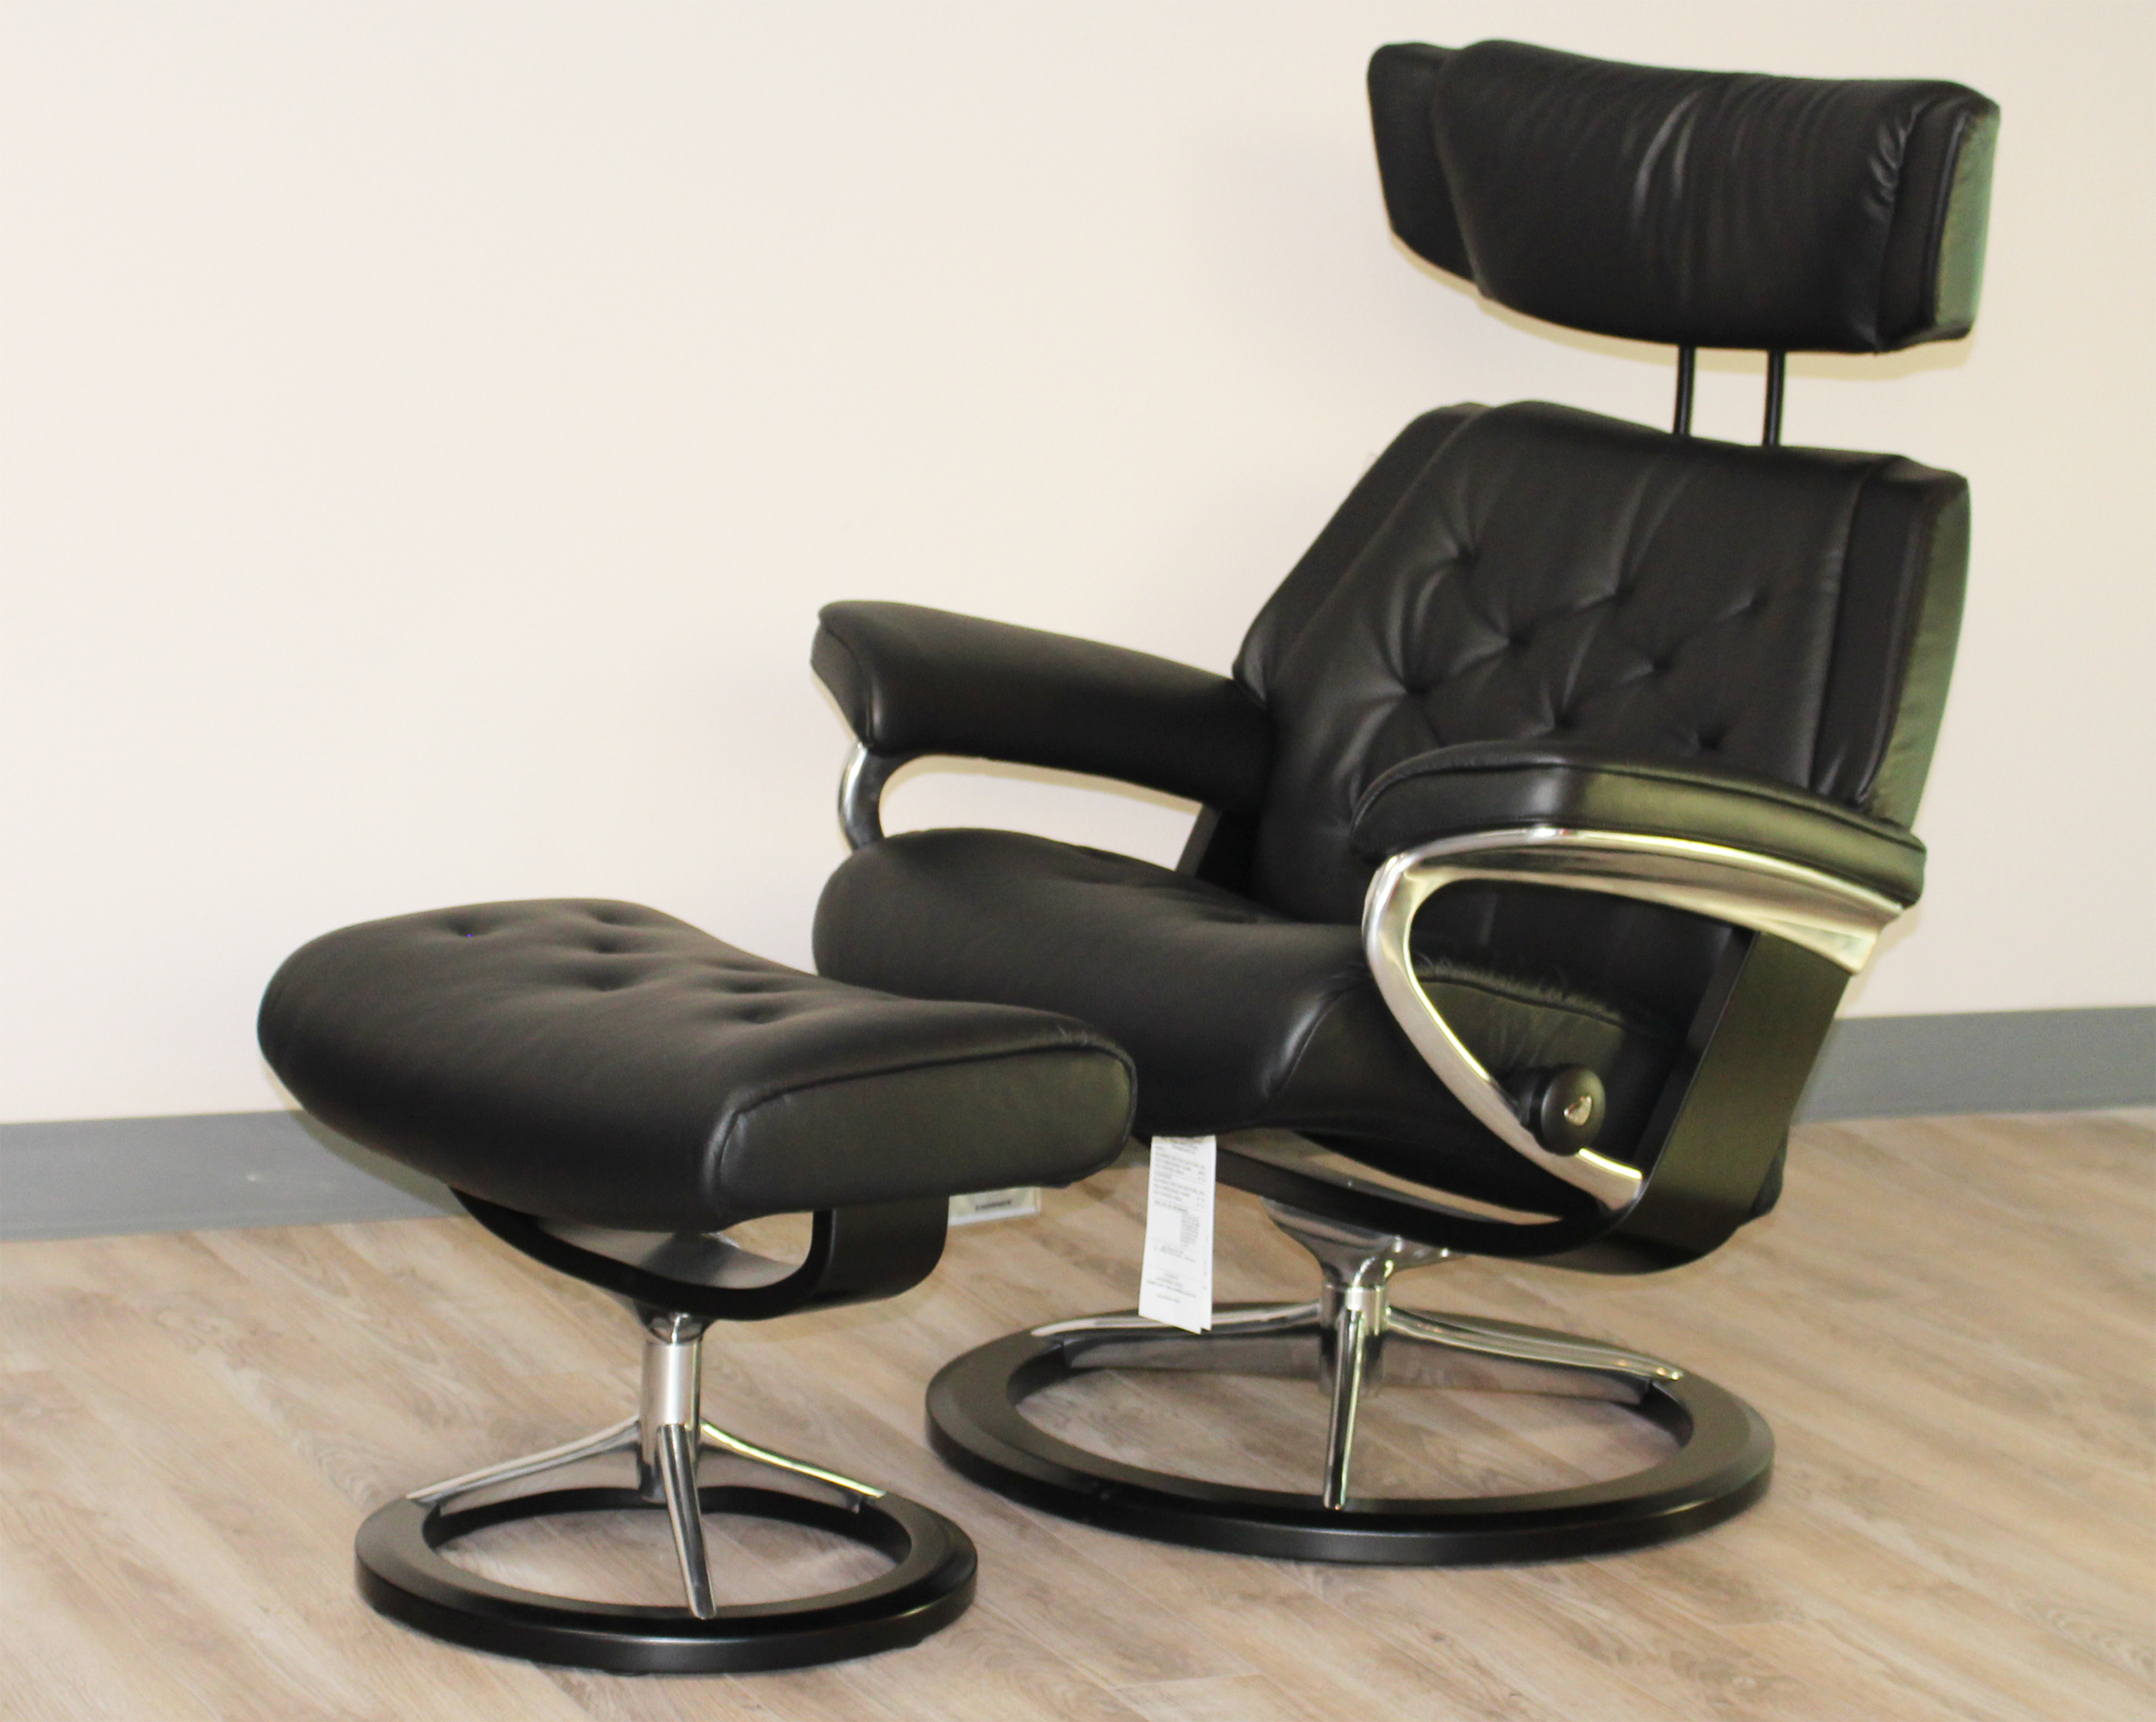 stressless skyline signature base medium paloma black leather recliner chair by ekornes - Black Leather Recliner Chair